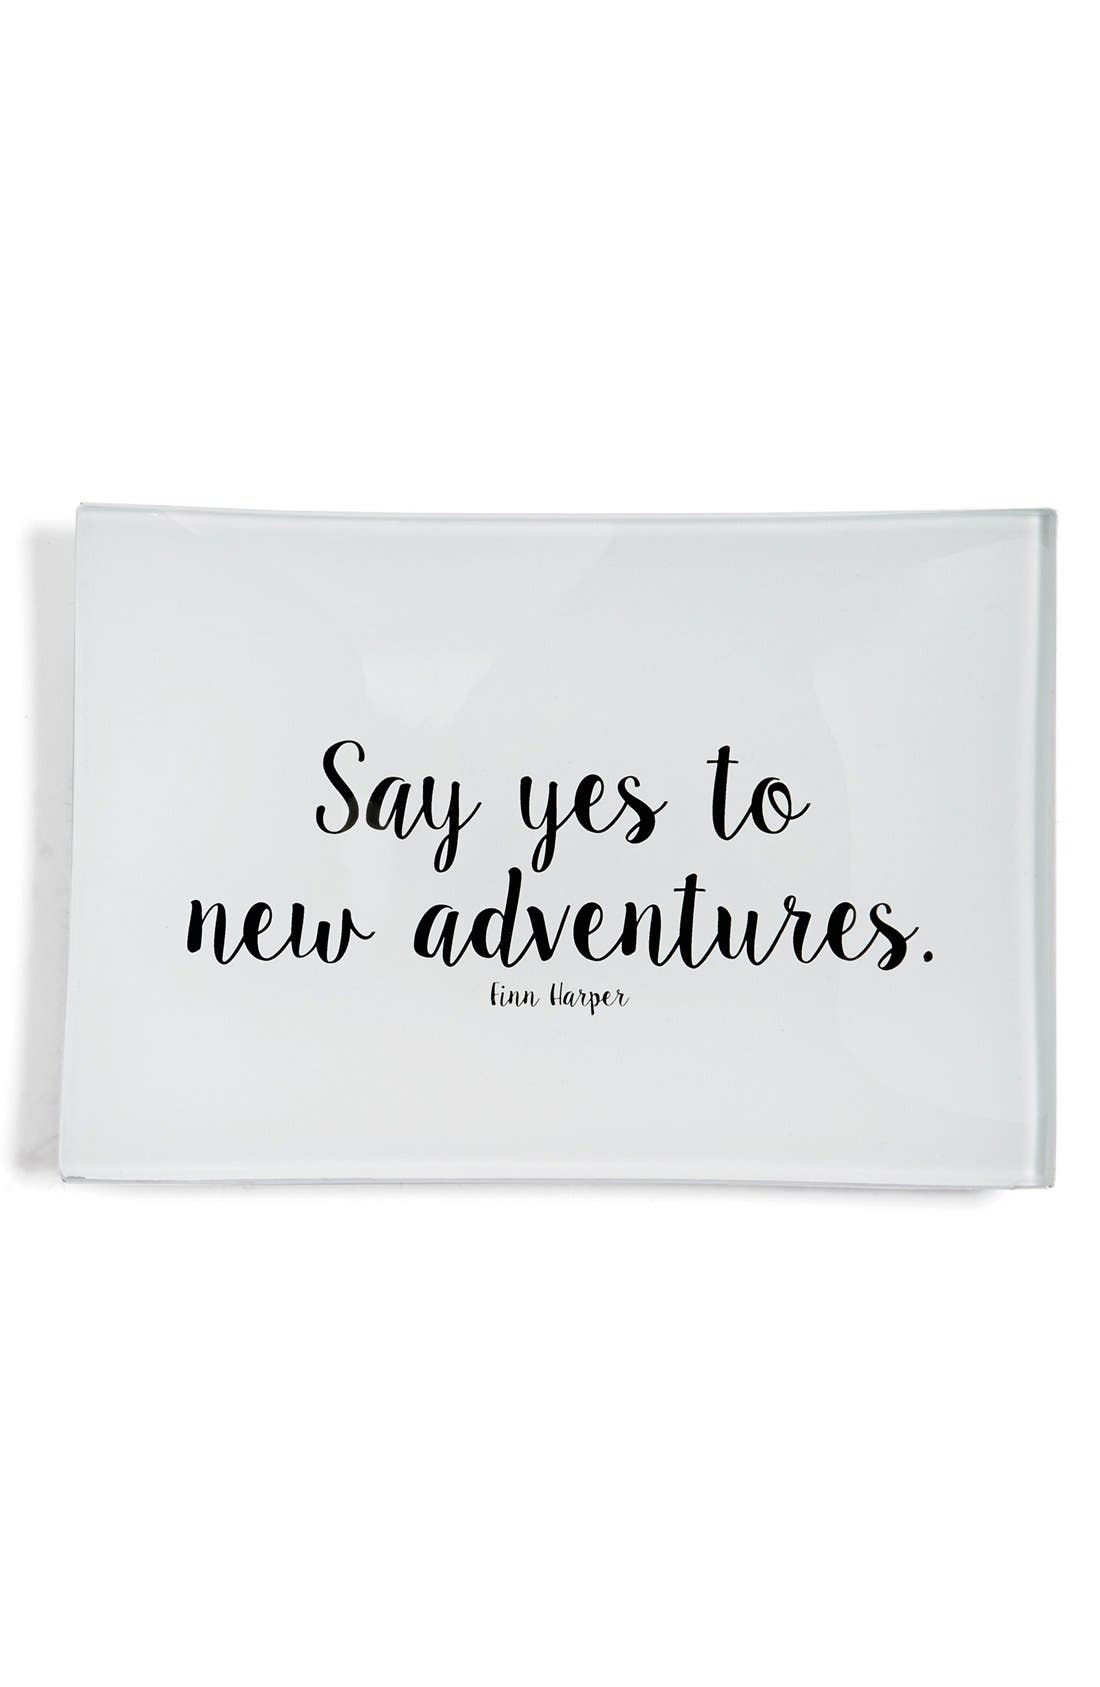 'Say Yes to Adventures' Trinket Tray,                             Main thumbnail 1, color,                             200